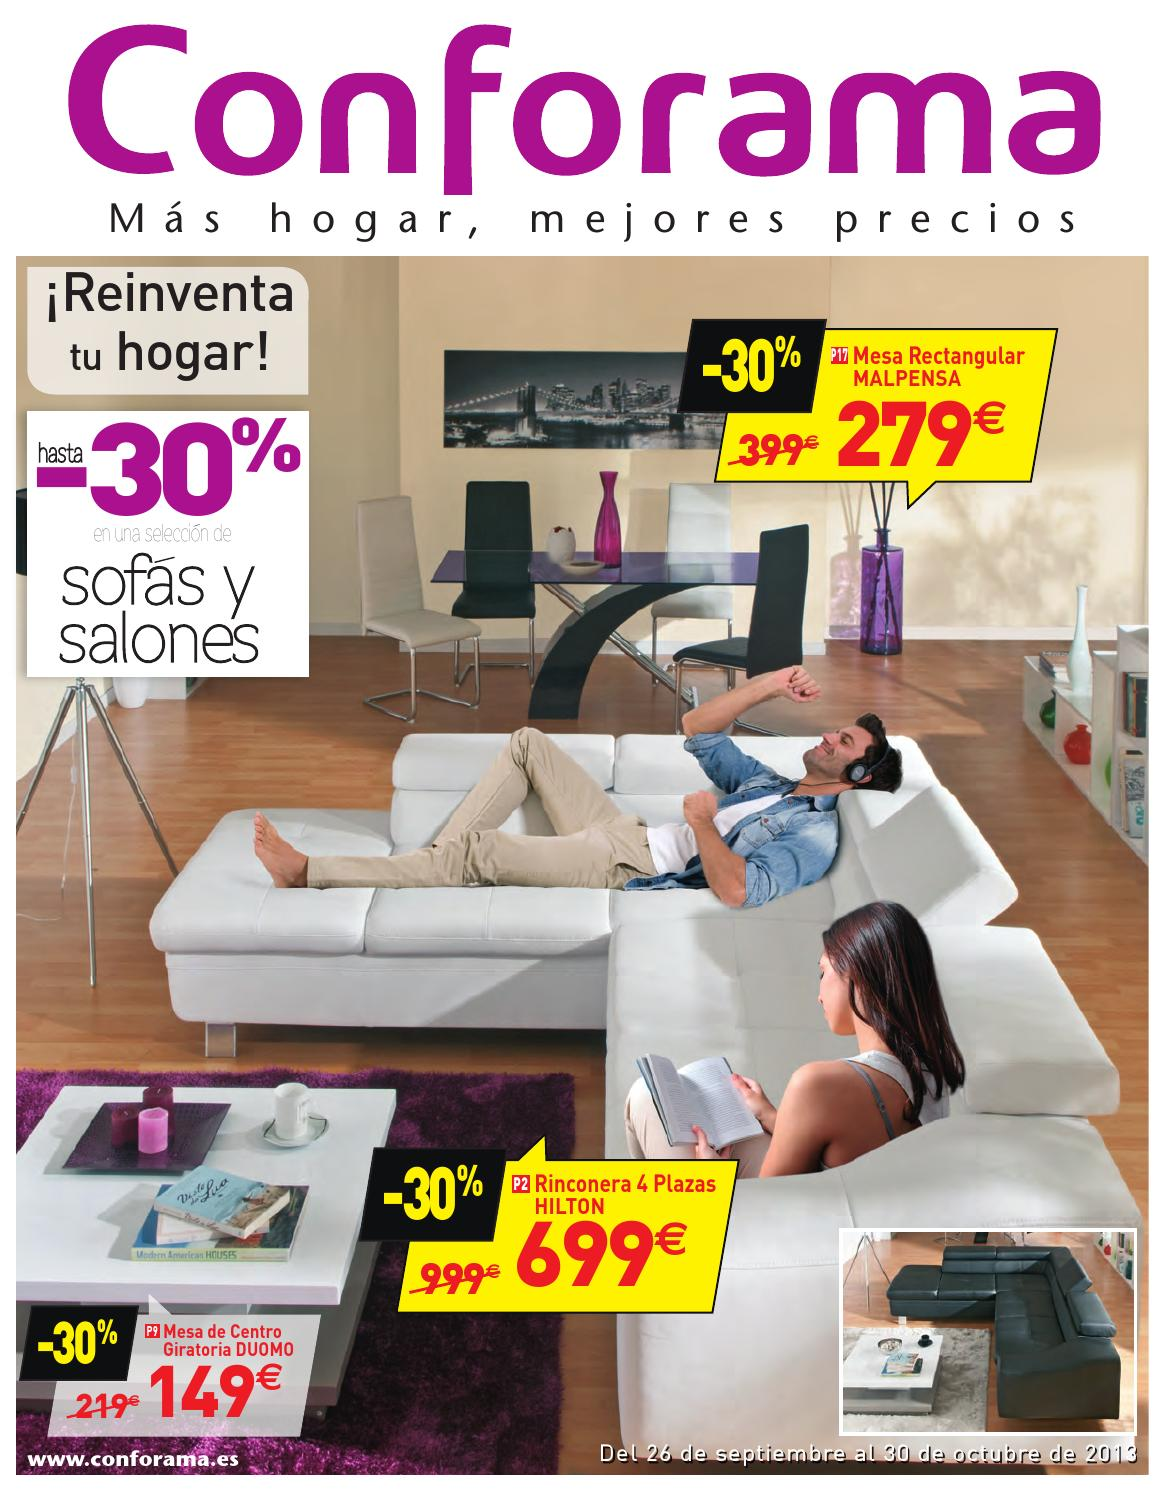 Catalogo conforama by issuu for Sofa hilton conforama